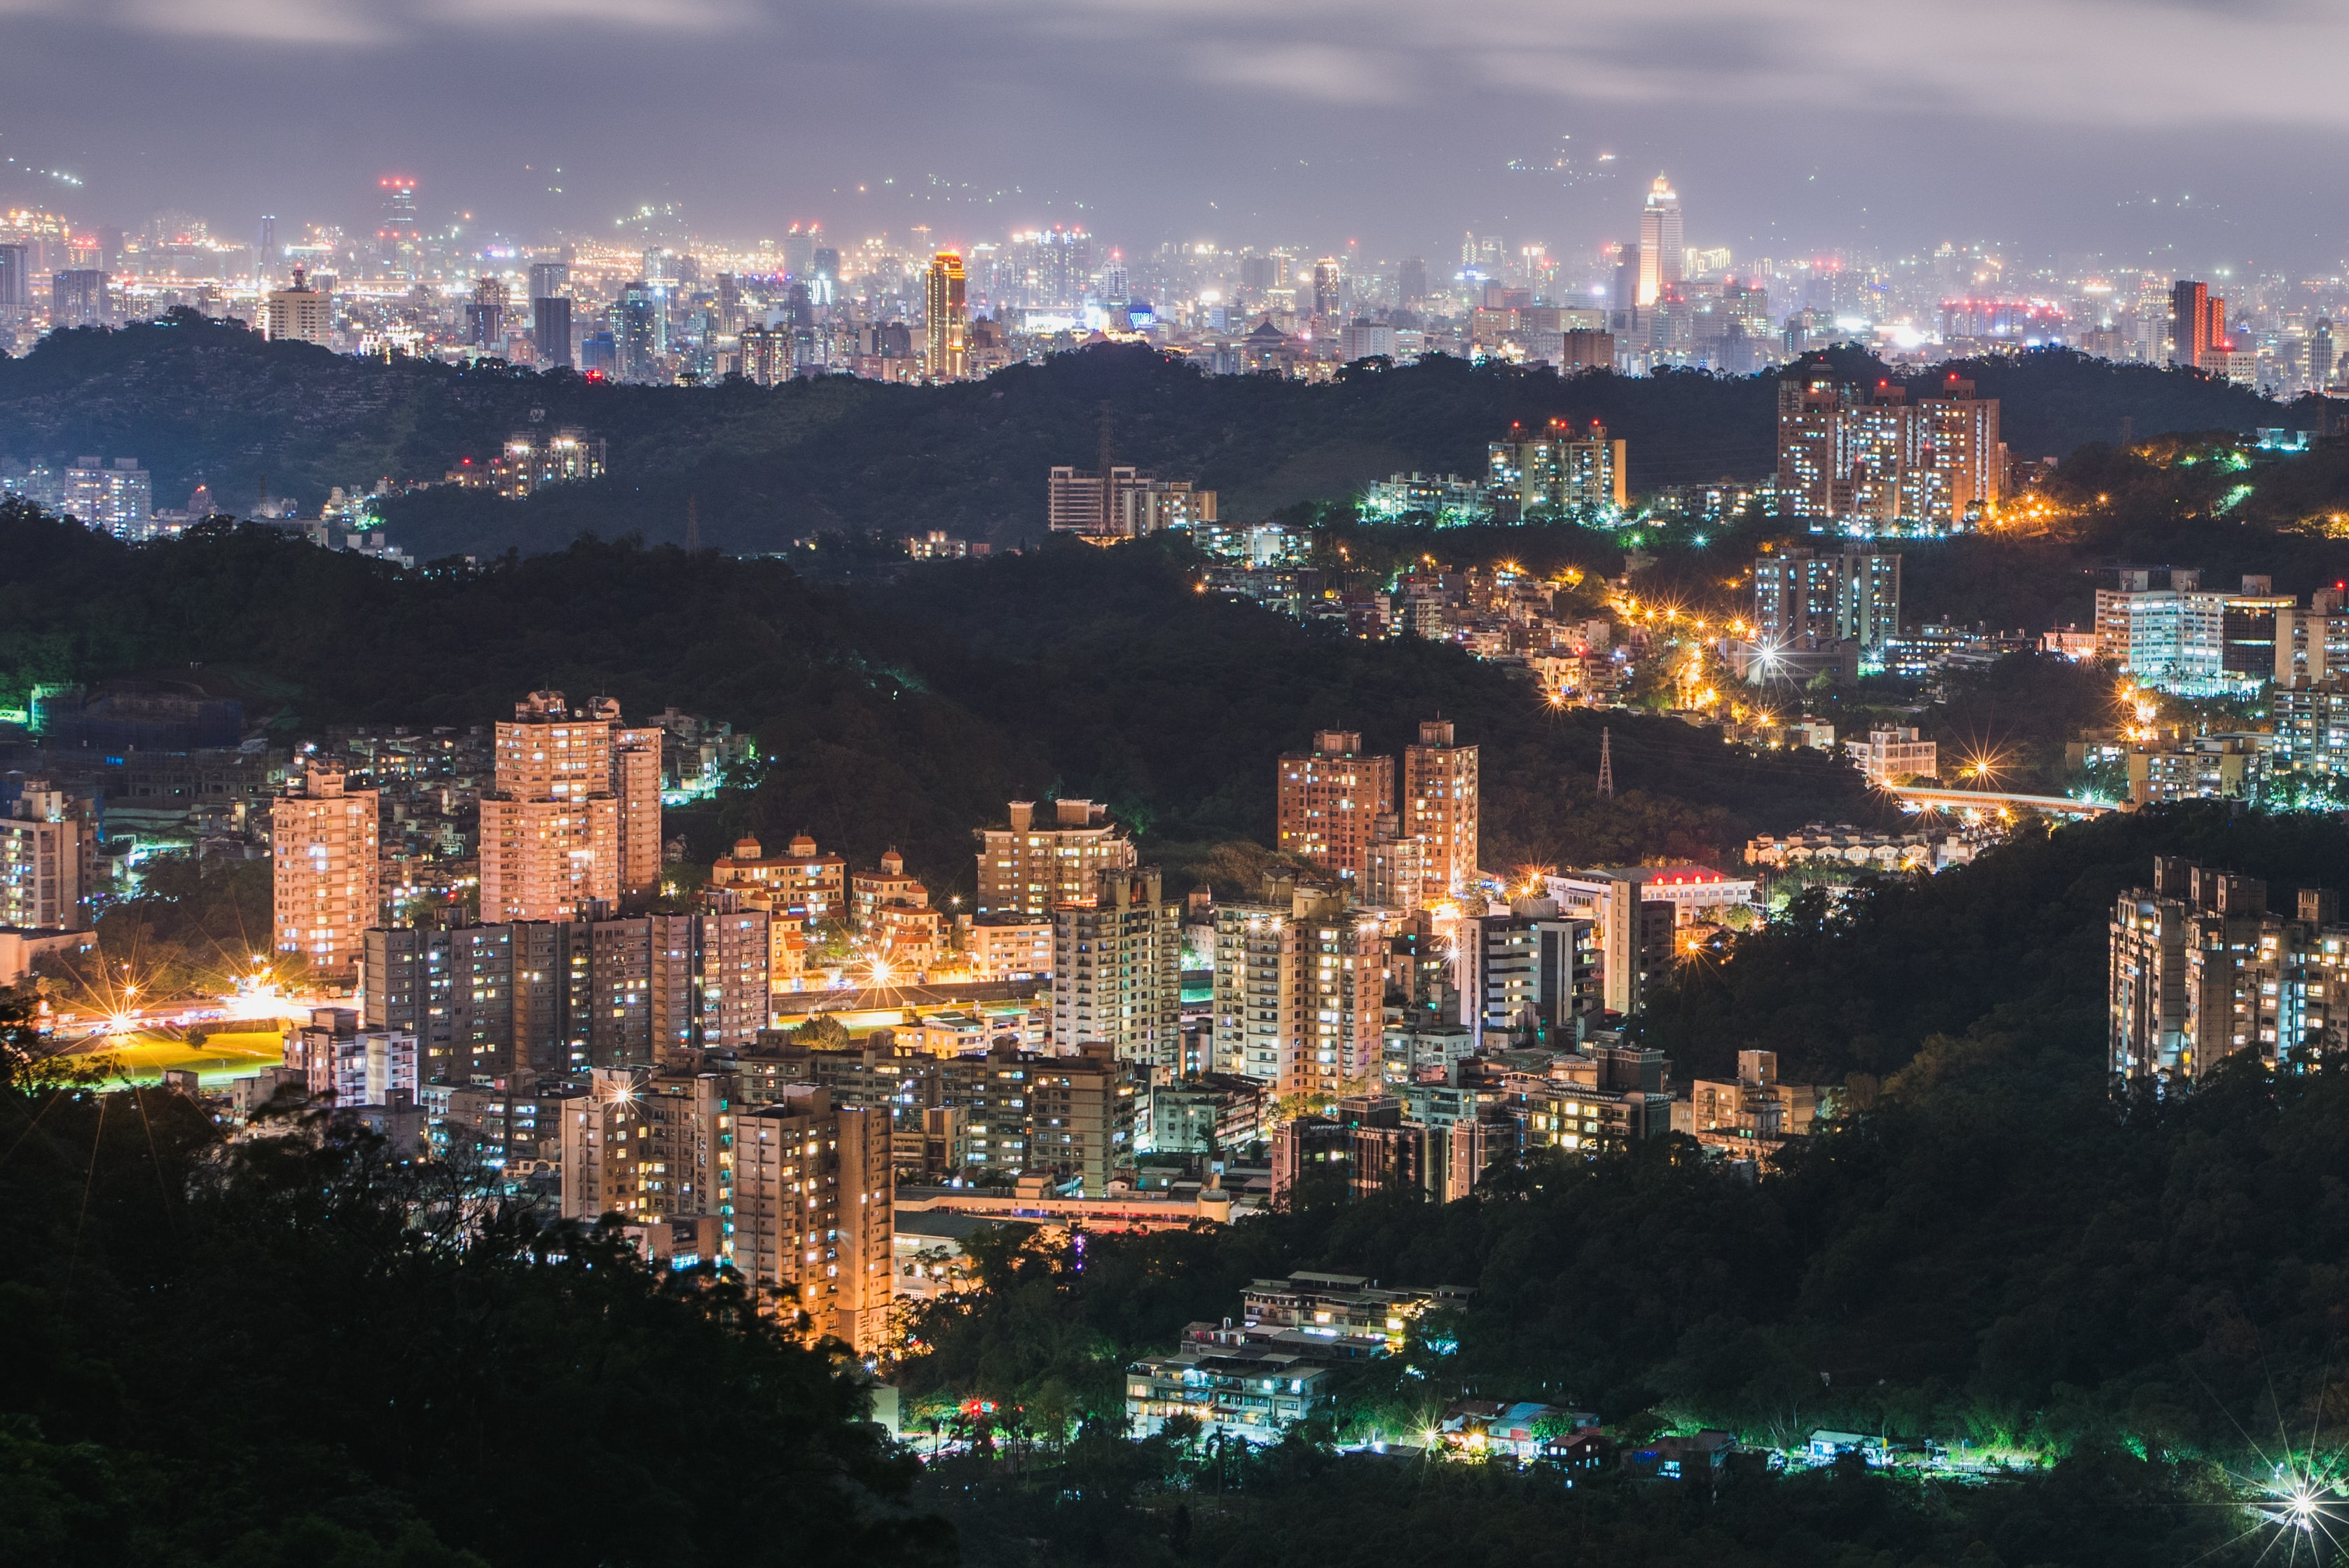 aerial view of hills and high-rise buildings with lights